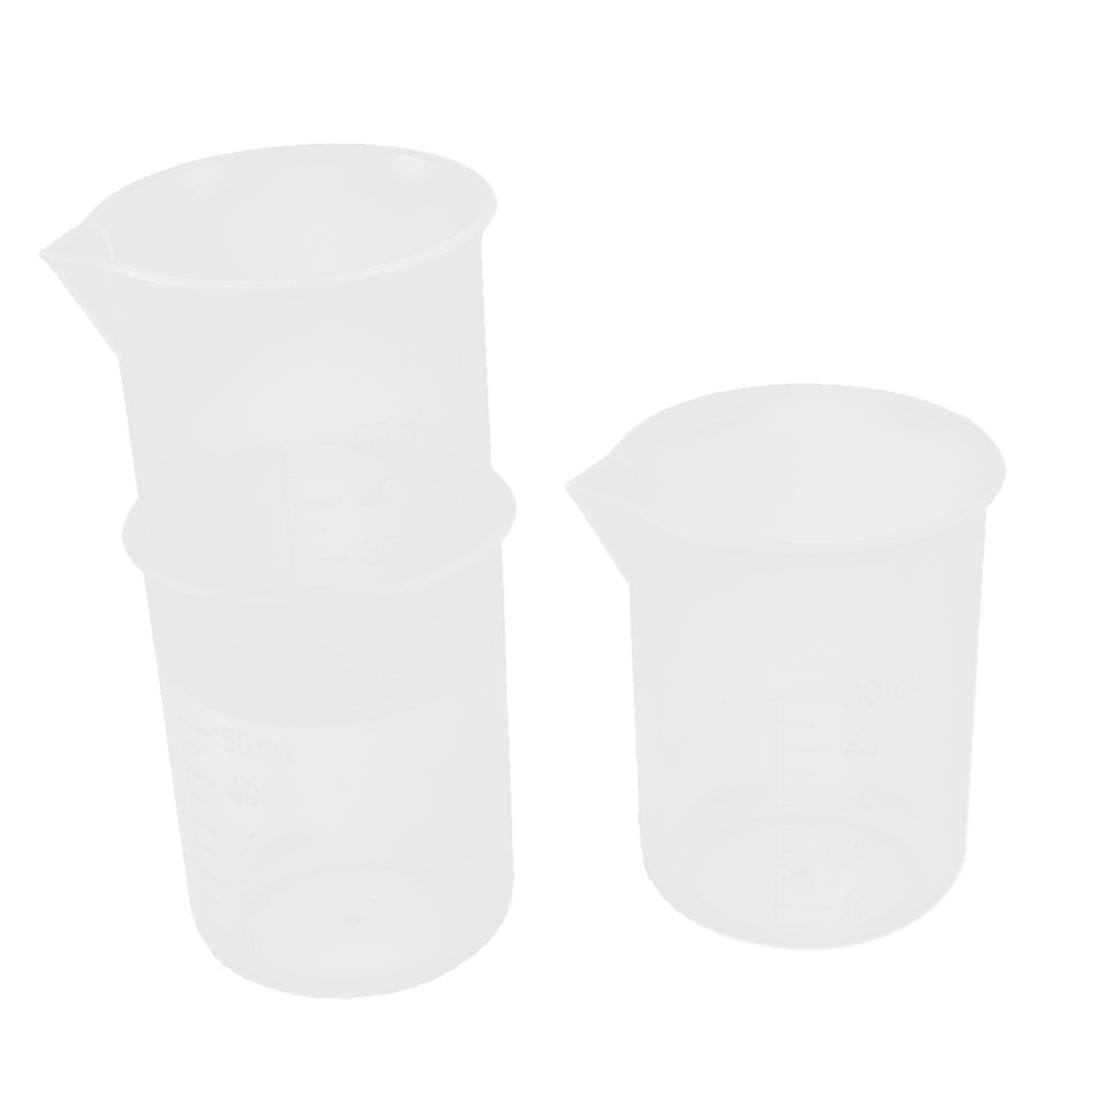 Lab 50ml Clear Plastic Graduated Beaker Measuring Cup Container Tool 3pcs